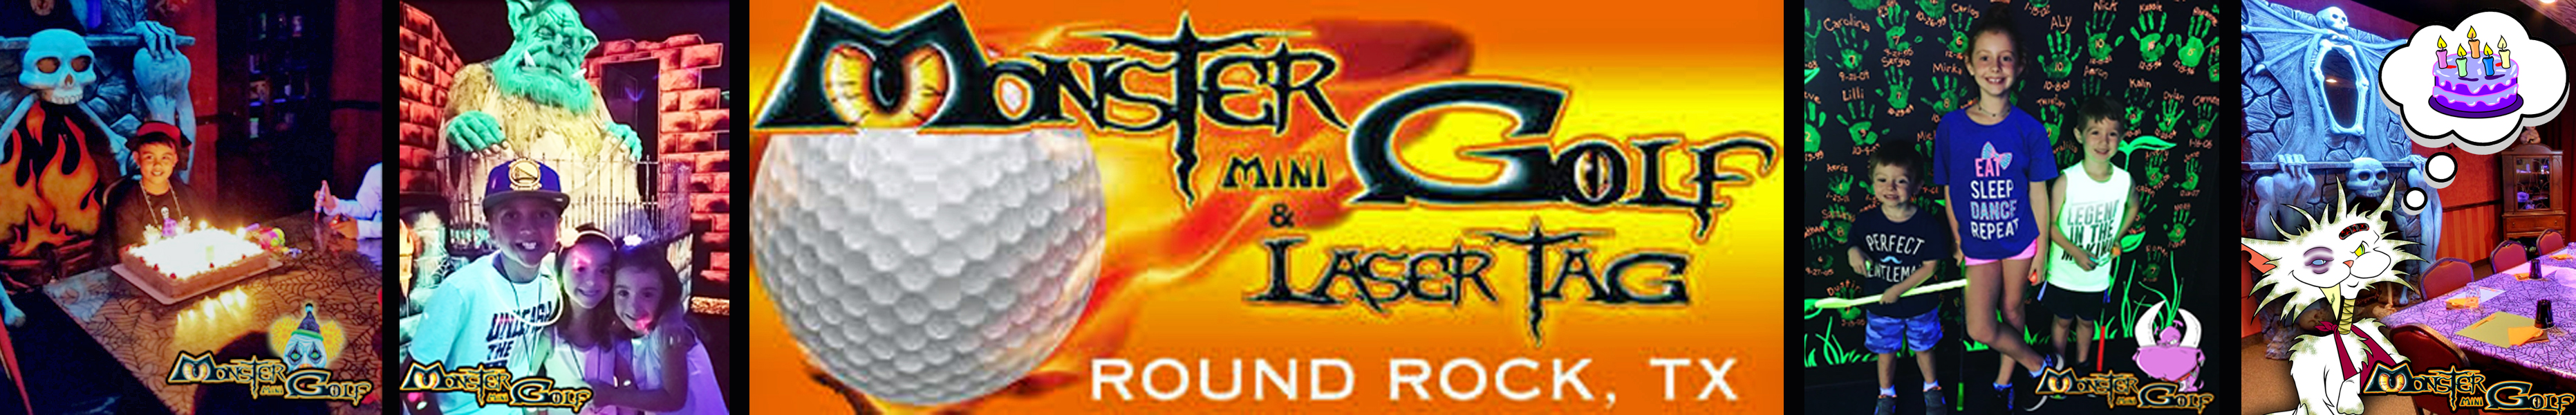 Round the Rock Birthday Party Directory- Monster Mini Golf & Laser Tag